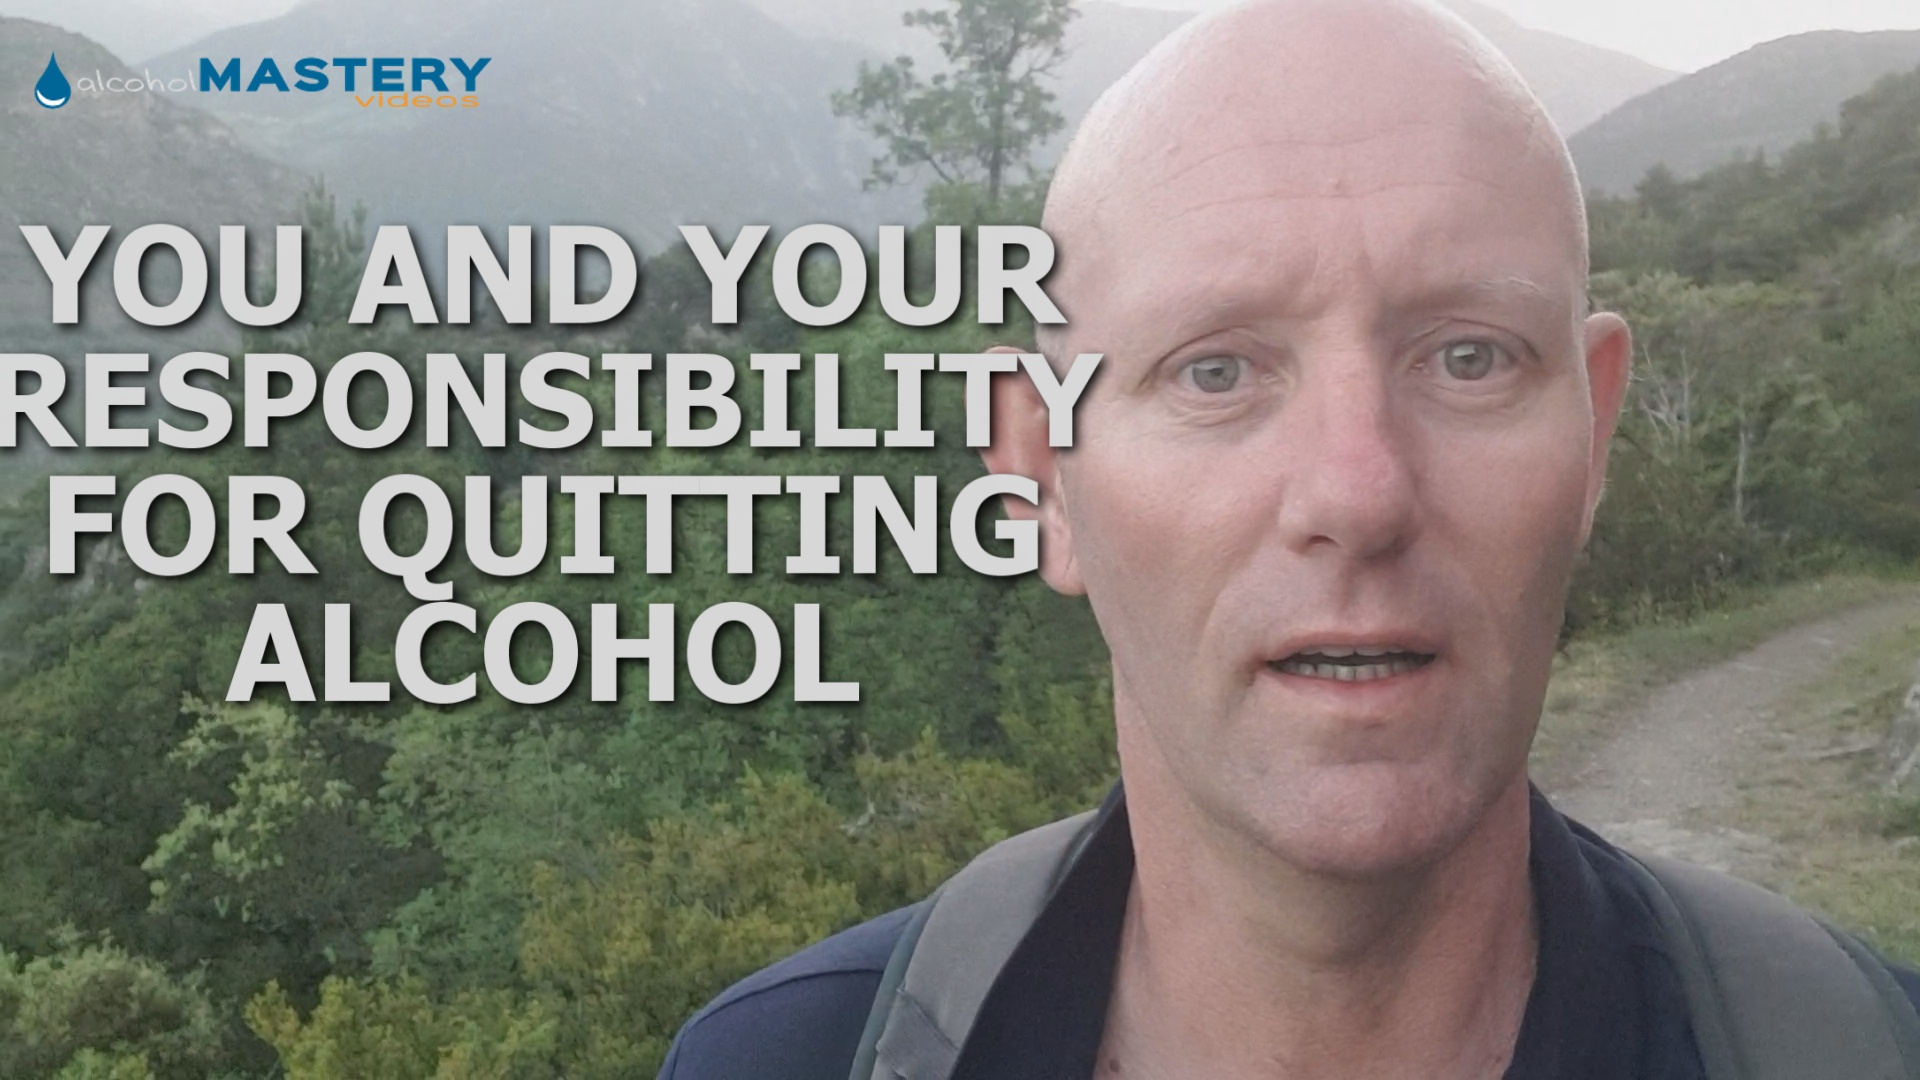 Take Responsibility for Yourself and Stopping Drinking Alcohol